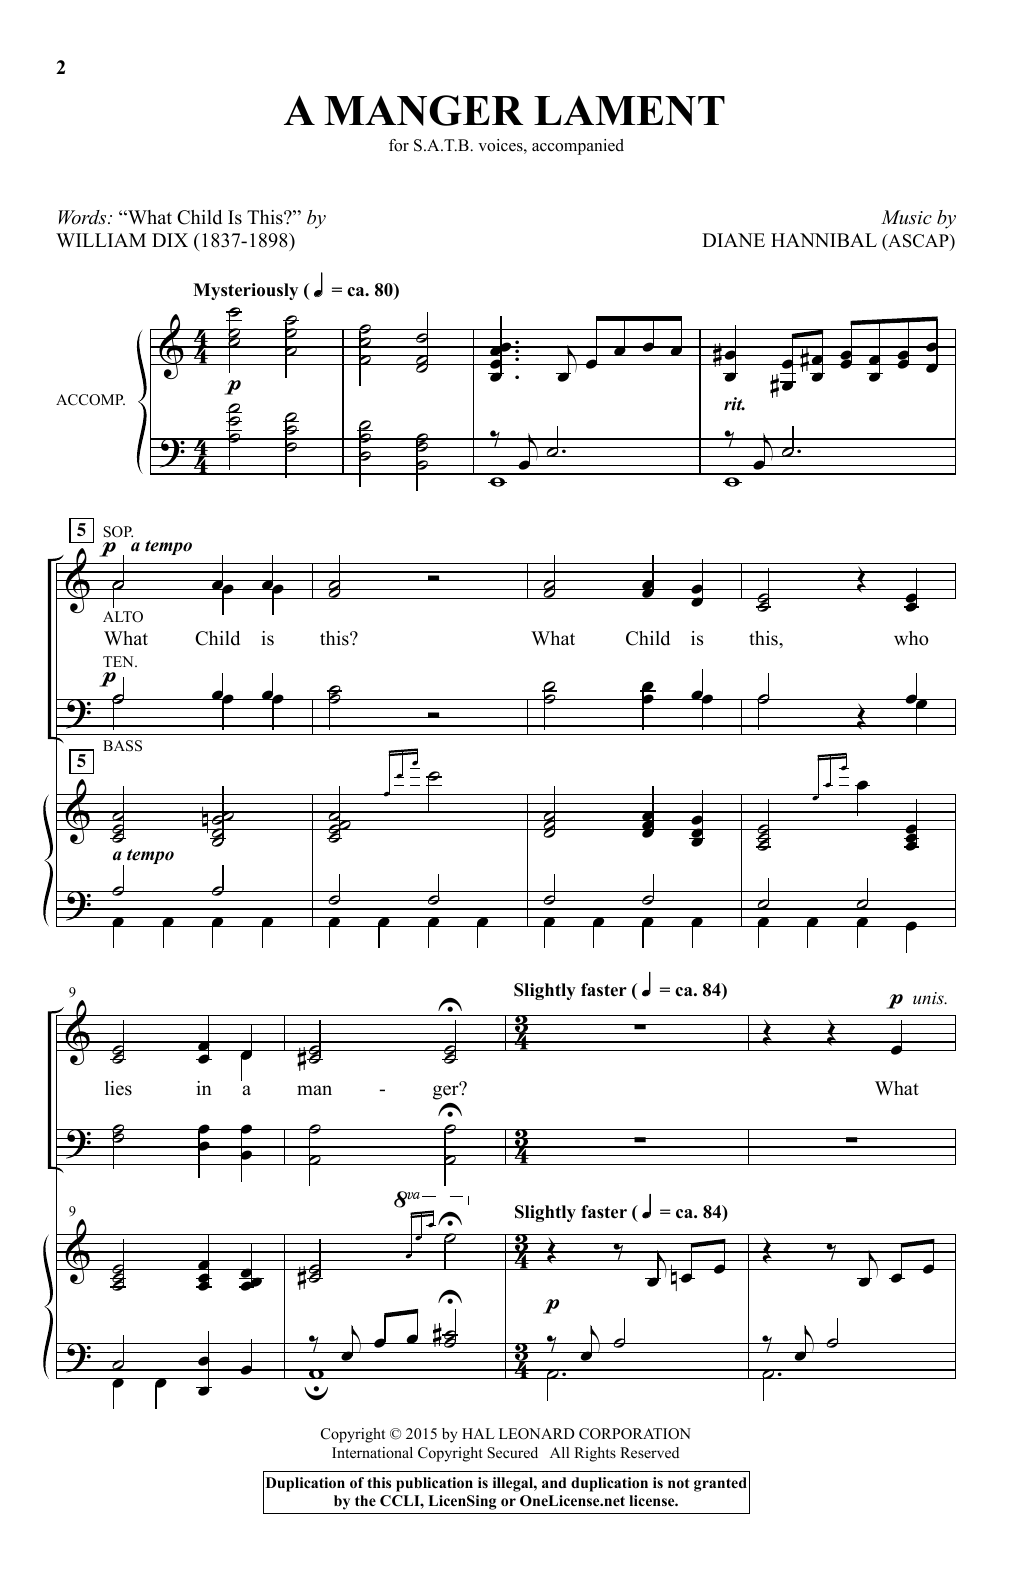 A Manger Lament Sheet Music